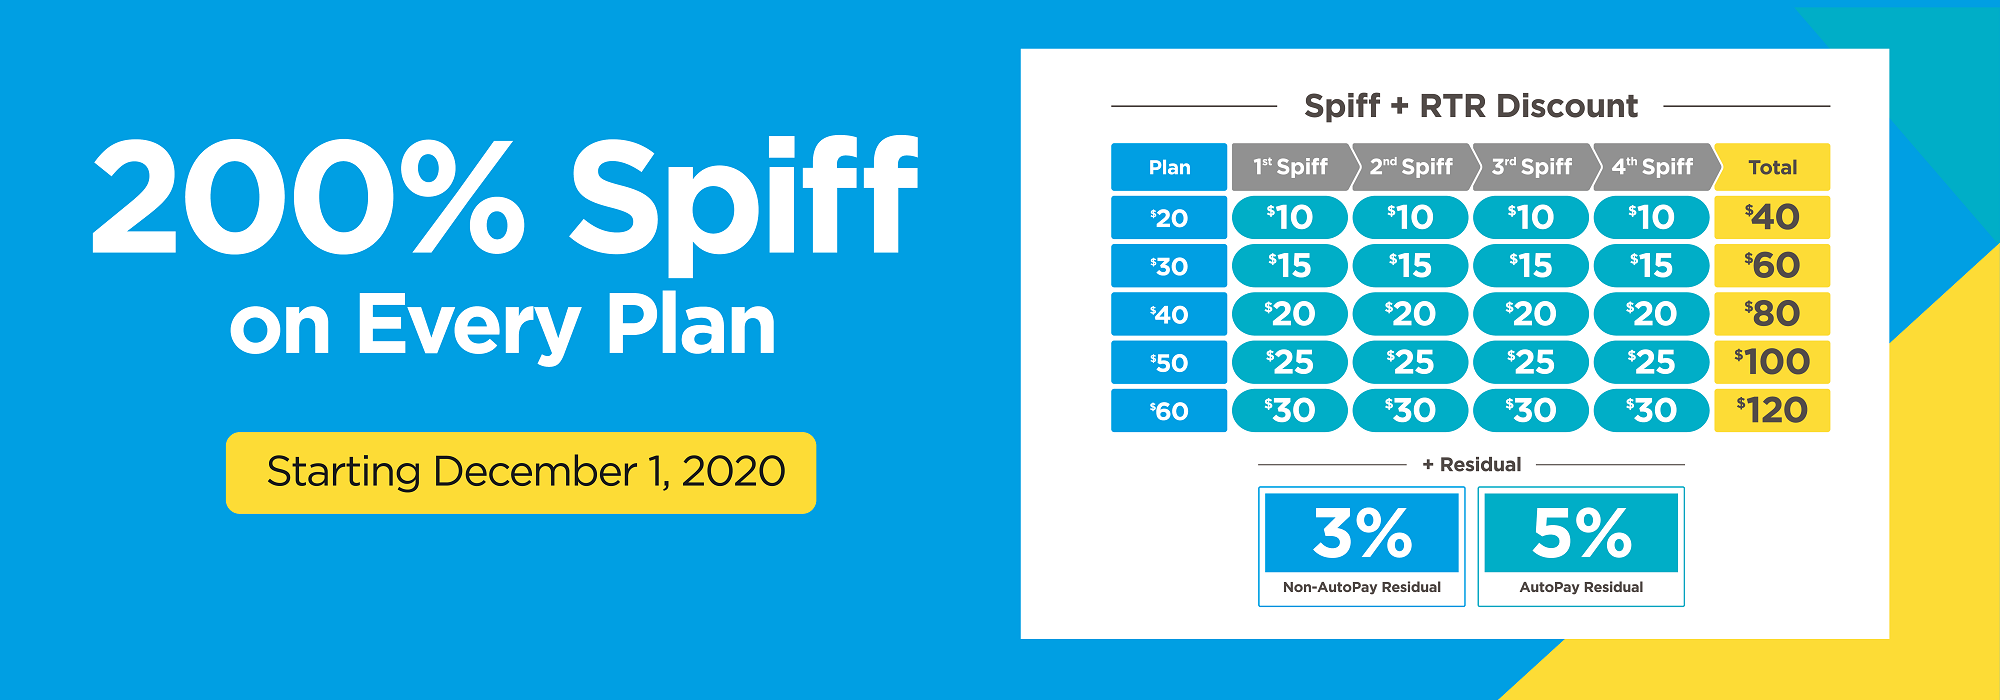 h2o, prepaid, new $50 LTE unlimited more data plan earn up to 200% spiff - new h2o plan, up front commissions, RTR Discount, keep activation fee. New Spiff + RTR Discount - Simapay h2o number 1 master agent - Prepaid wholesale